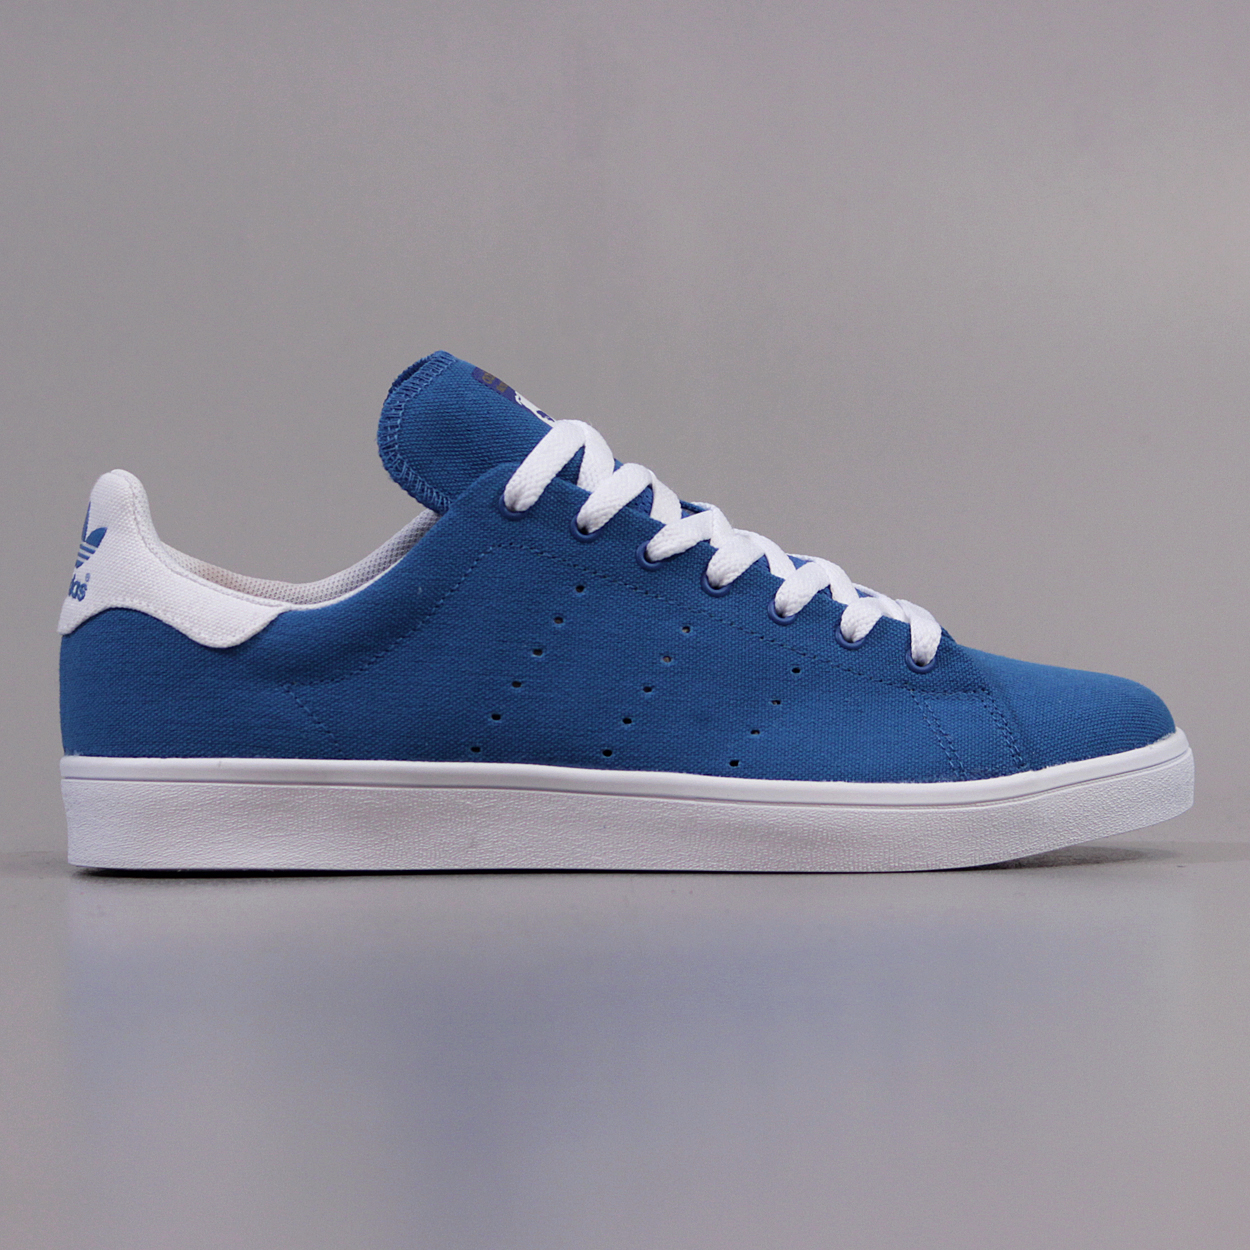 Adidas Stan Smith Bluebird